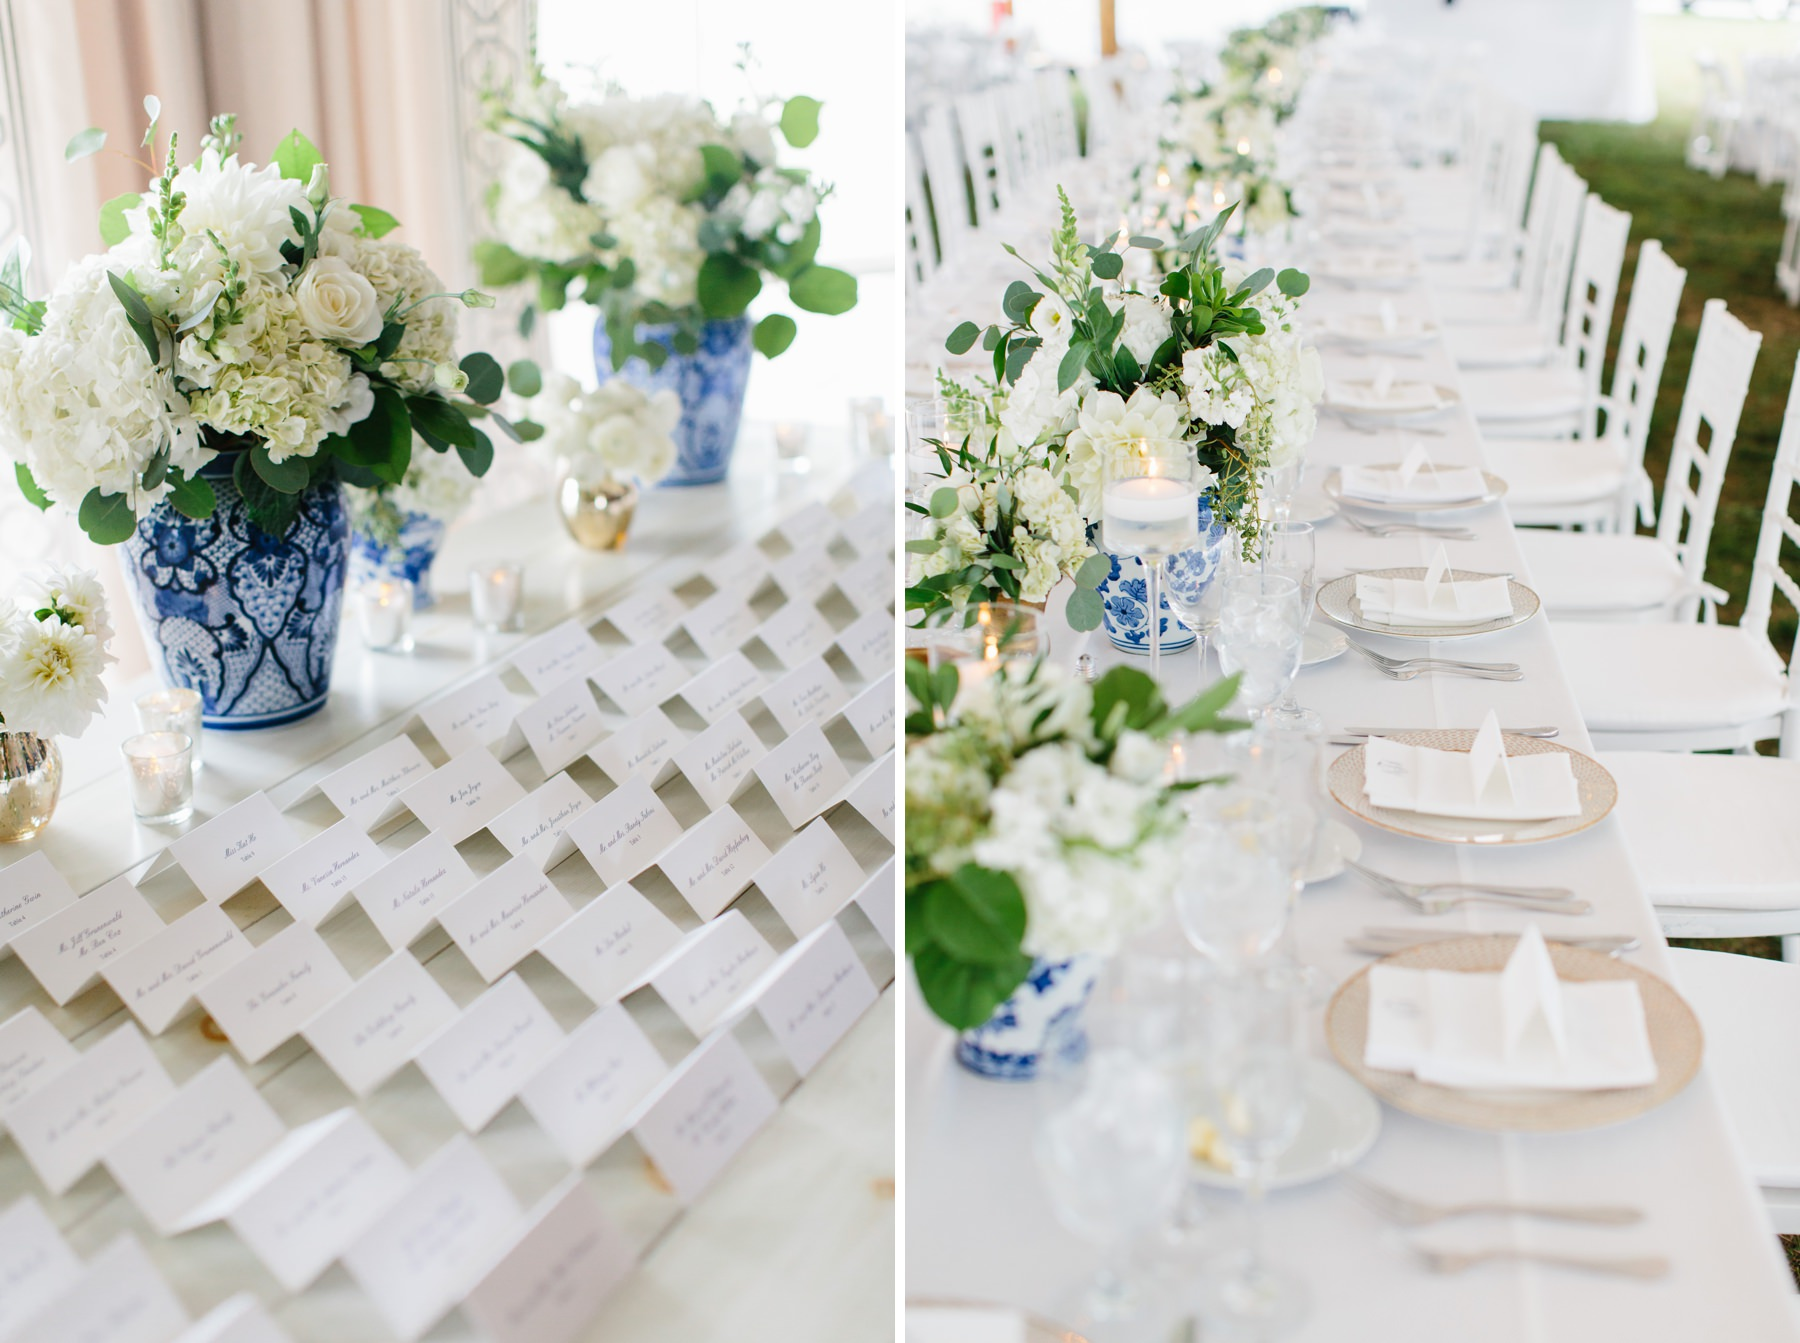 blue and white wedding ginger jars